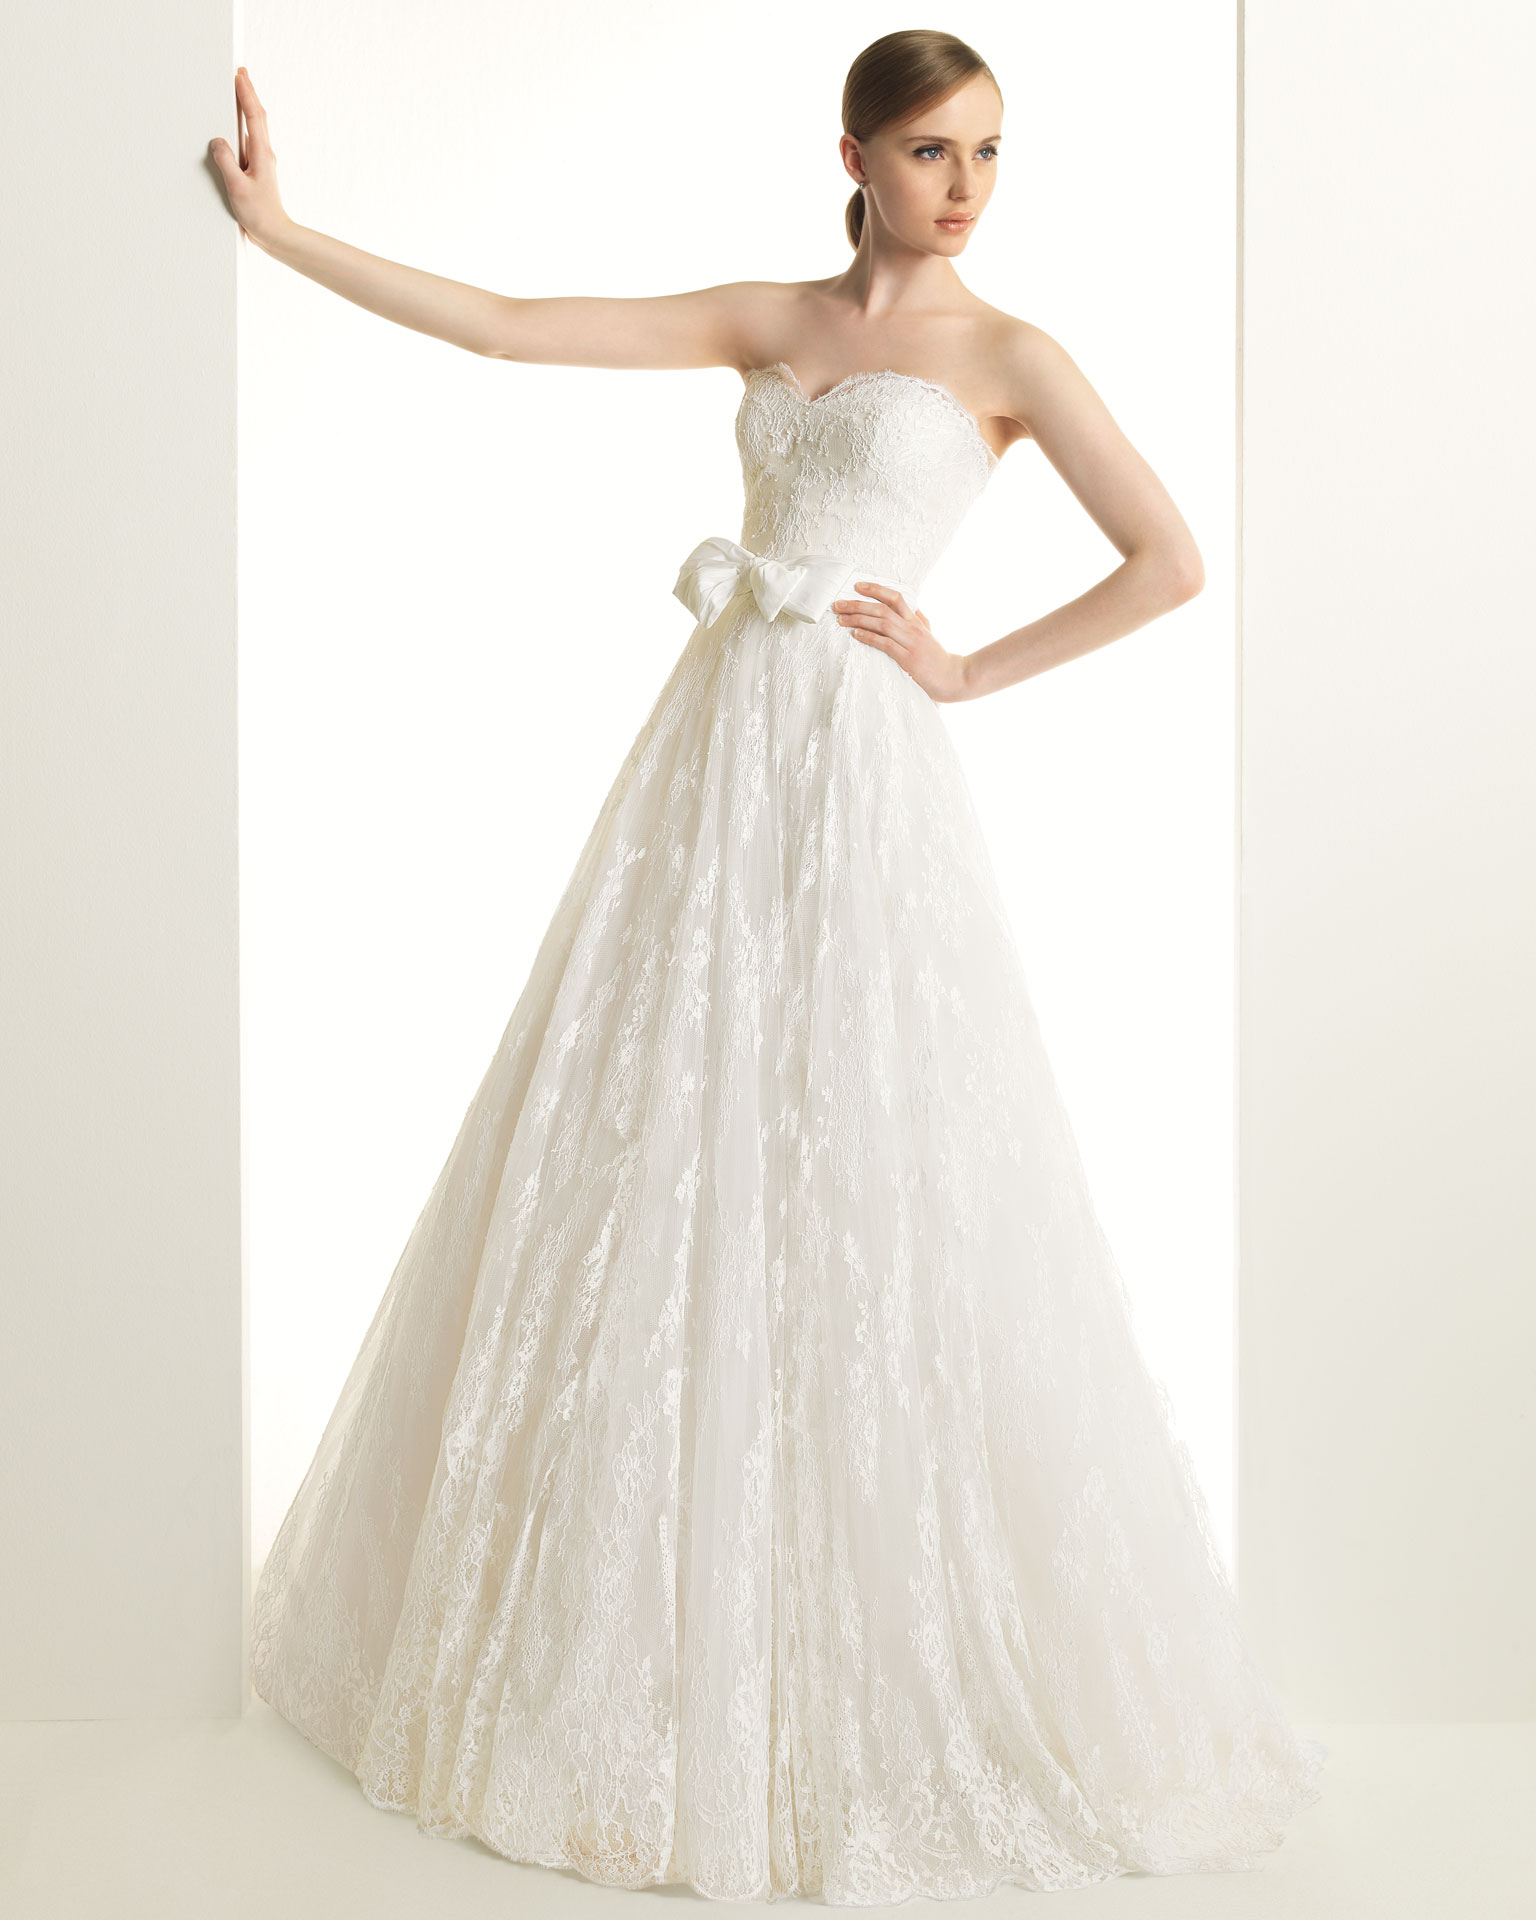 2013 wedding dress zuhair murad for rosa clara bridal for Zuhair murad wedding dresses prices